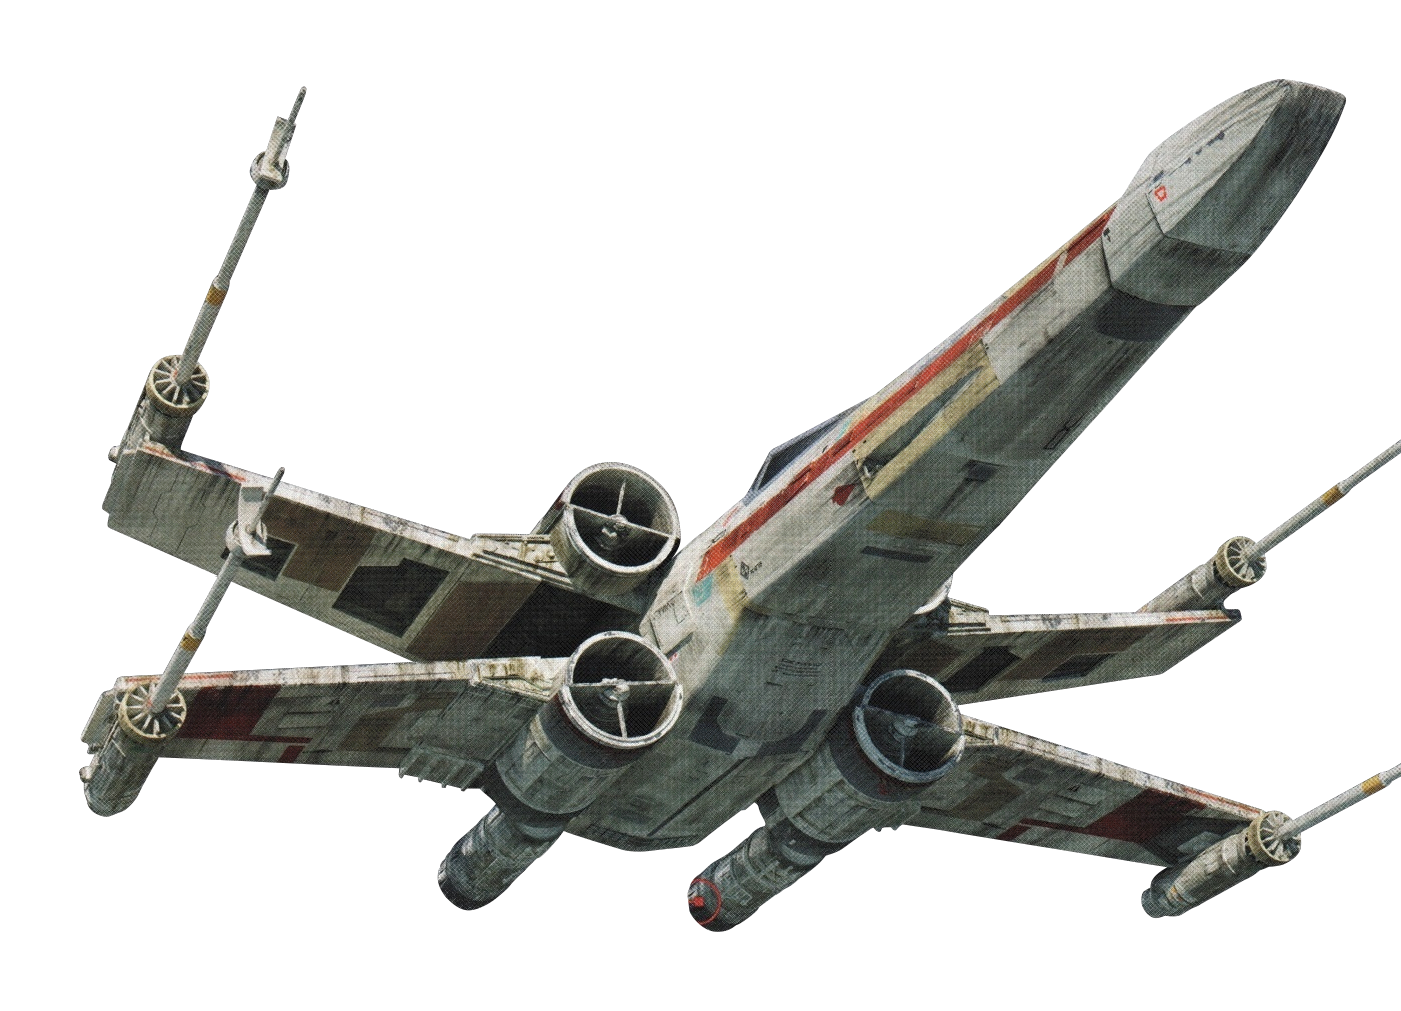 T-65C-A2 X-wing starfighter